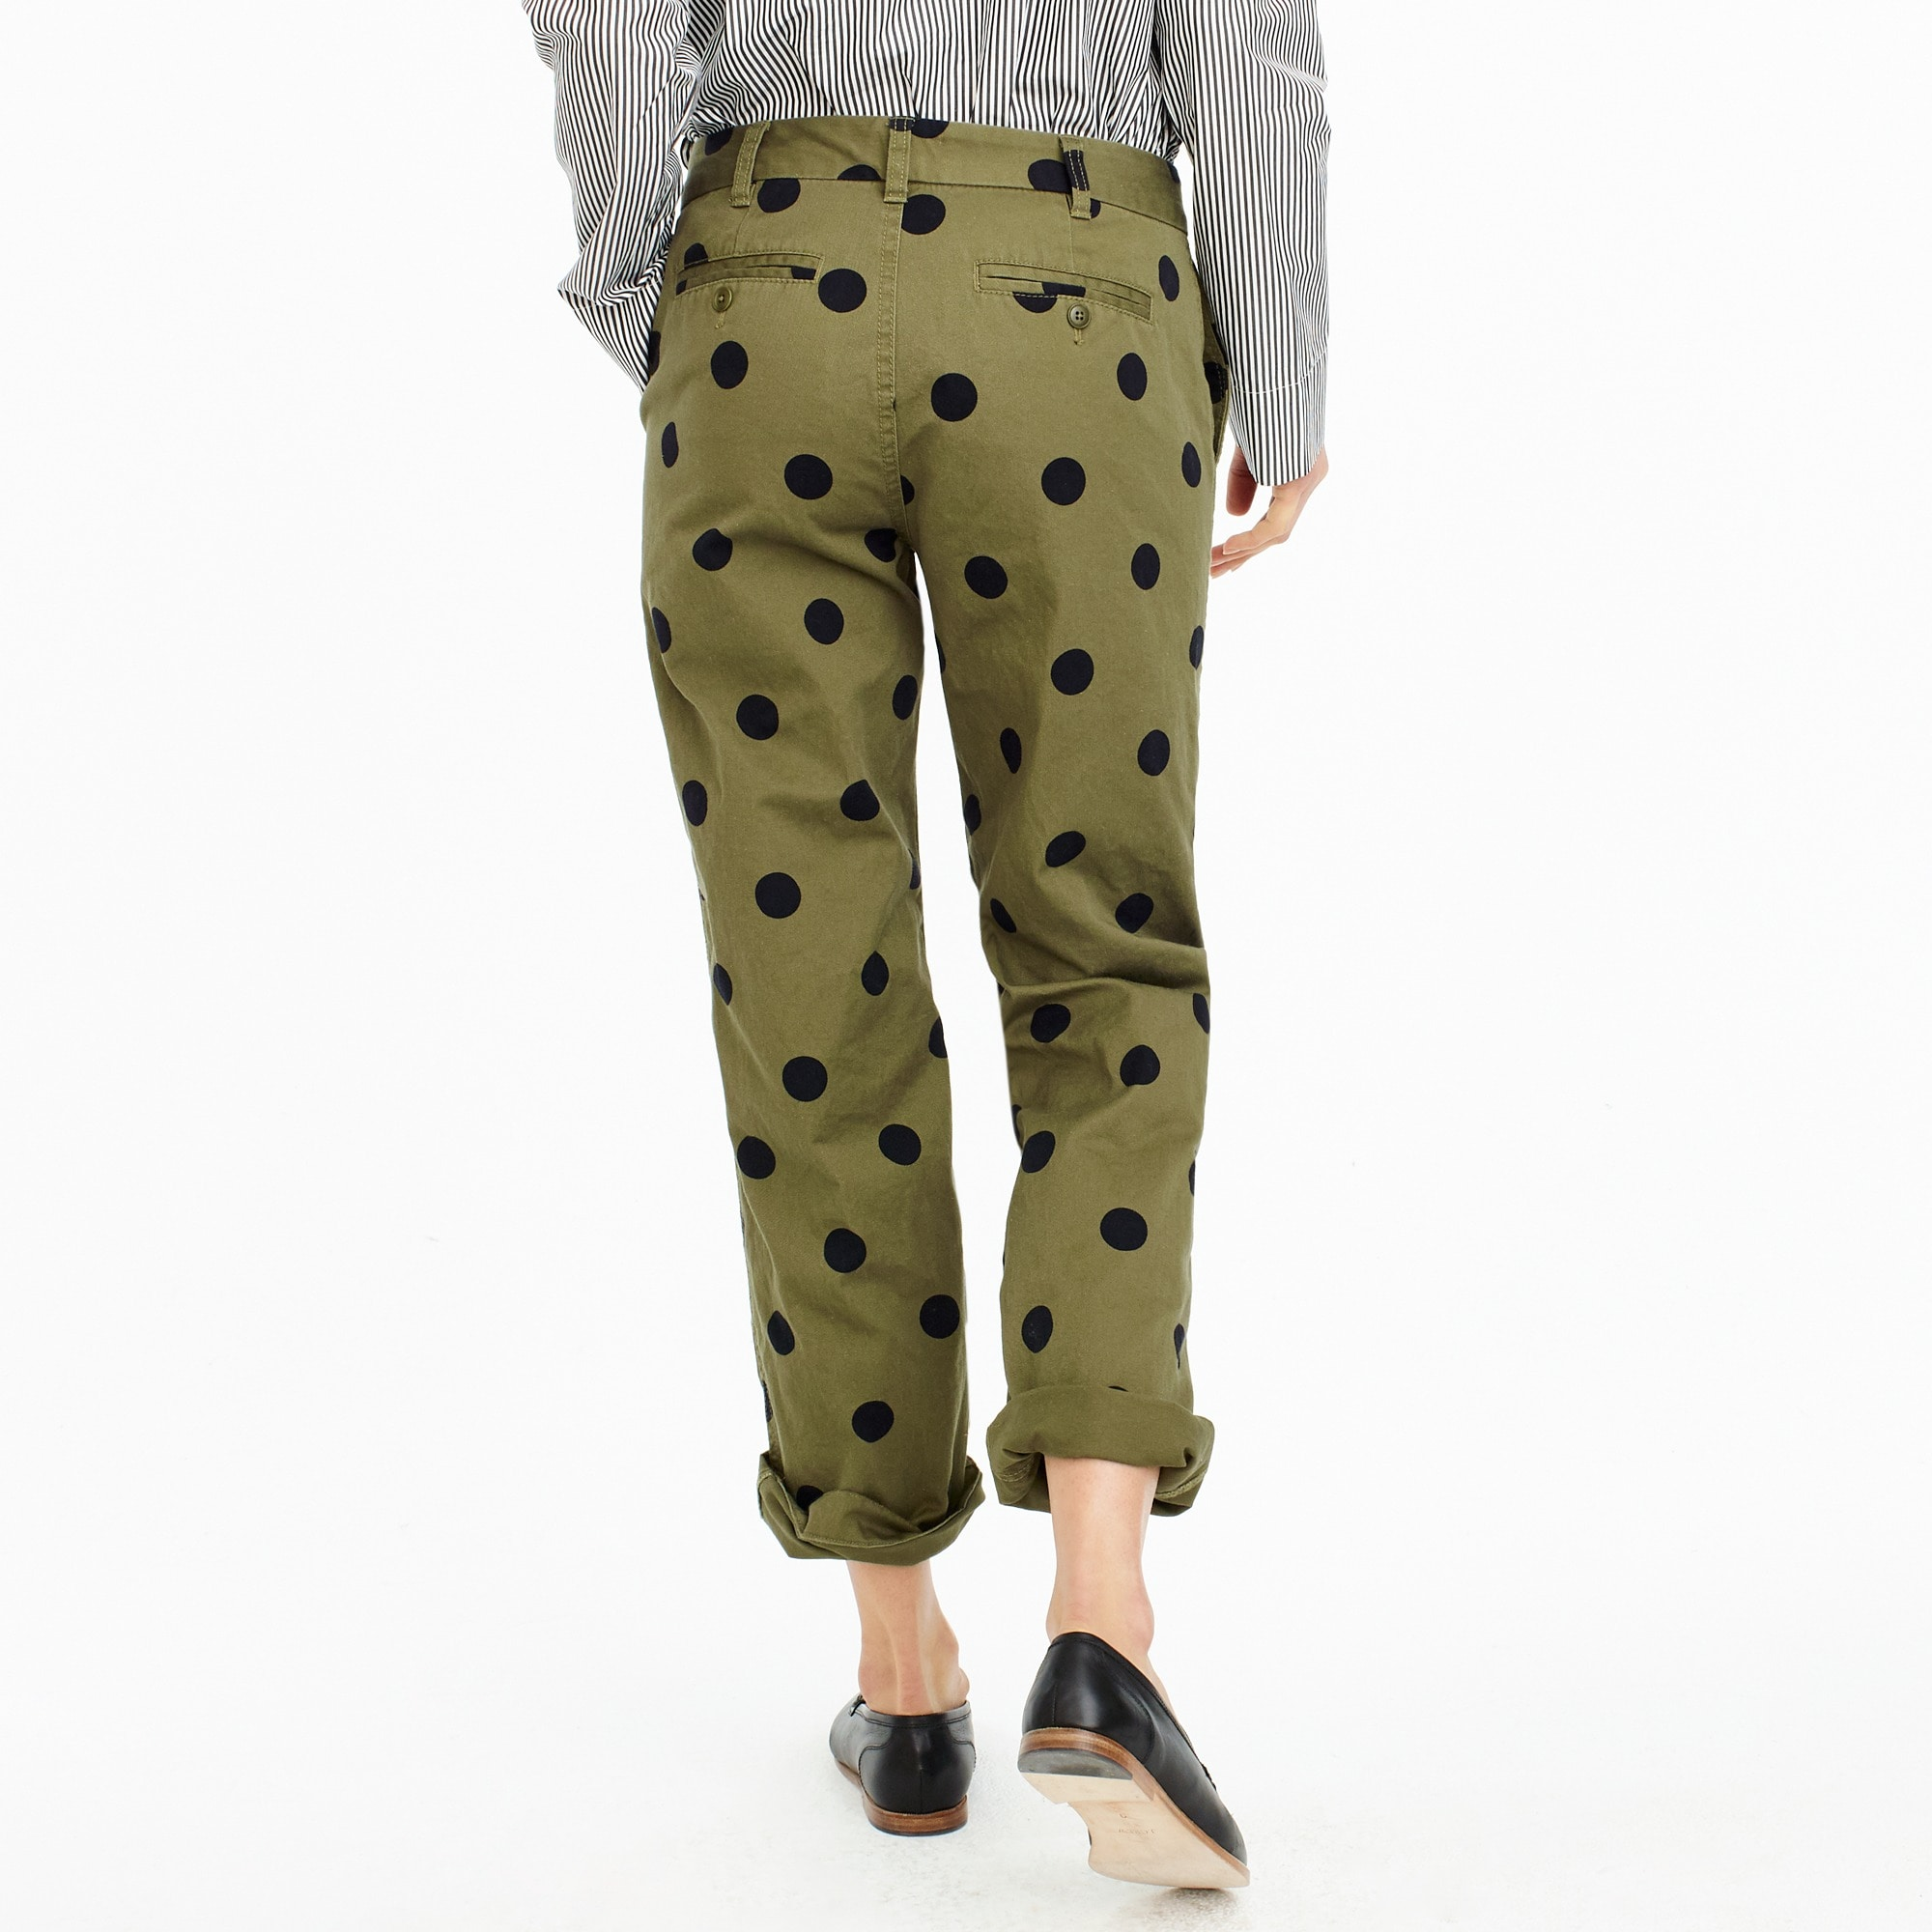 Image 3 for Tall boyfriend chino pant in polka dot